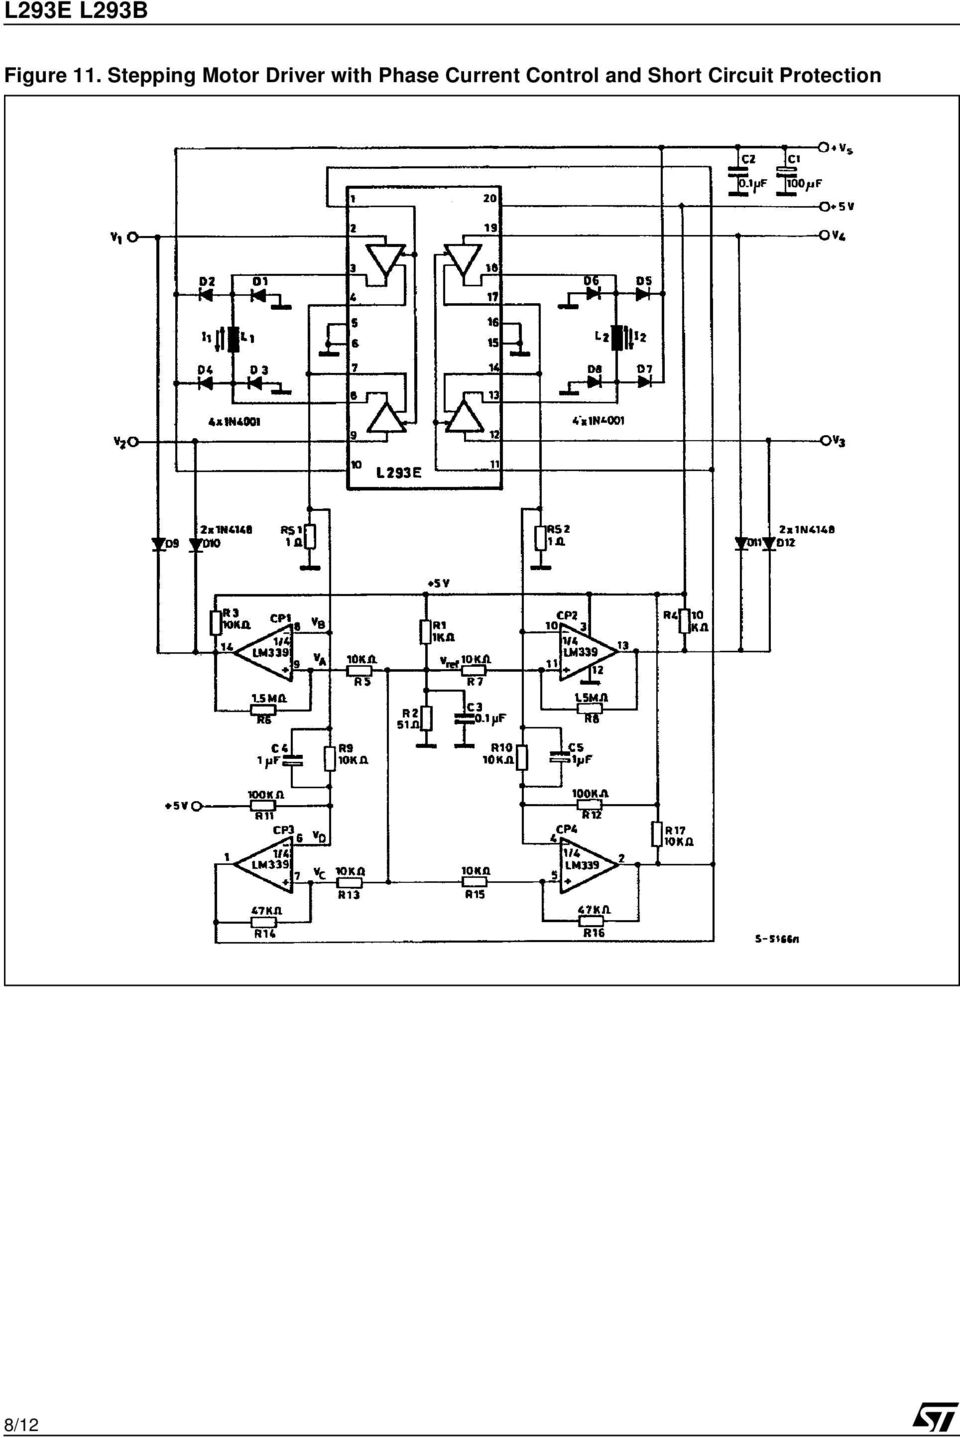 Phase Current Control and